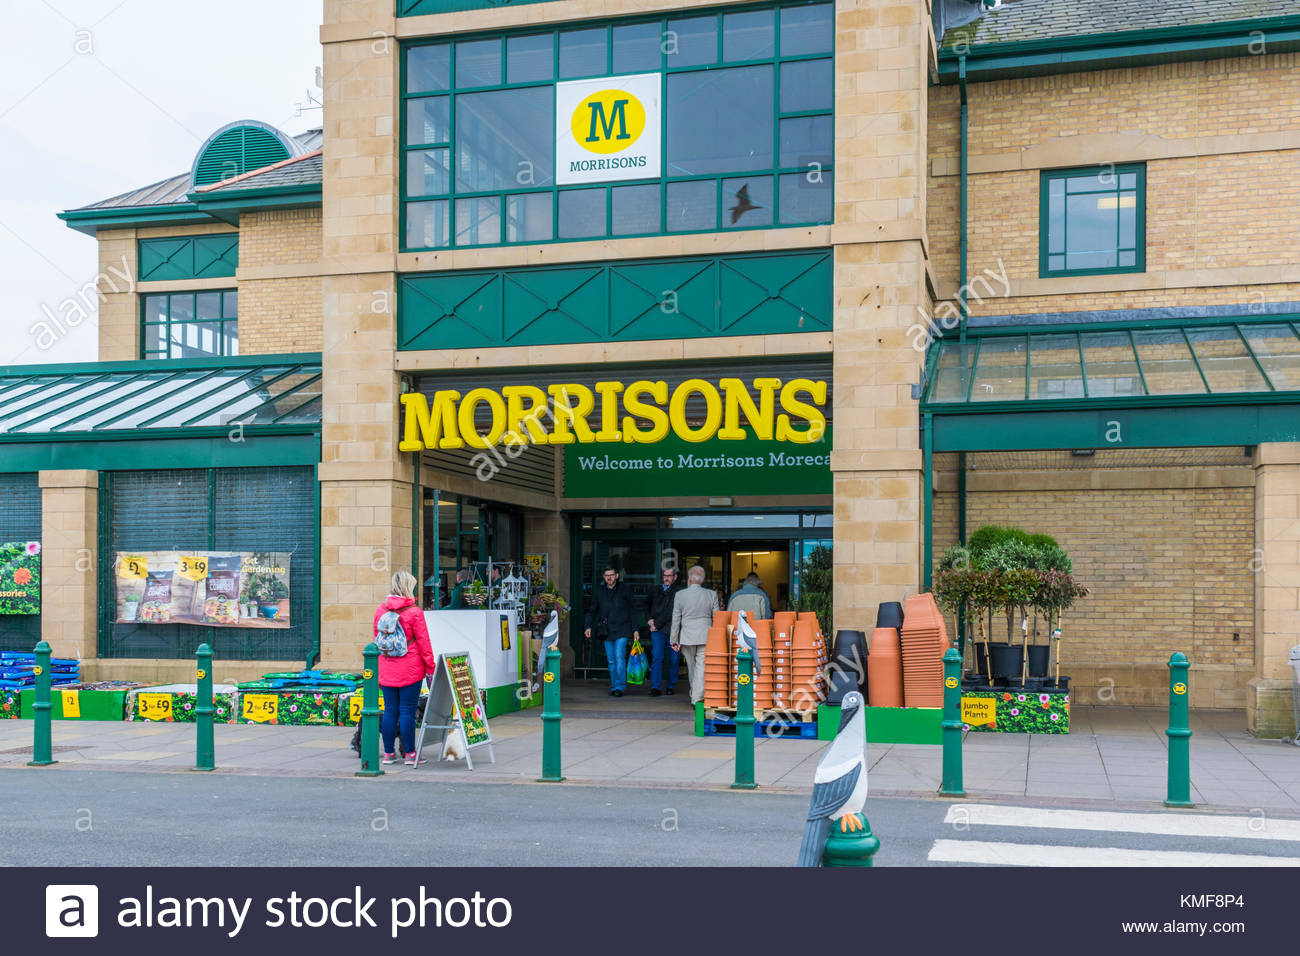 the-entrance-to-morrisons-supermarket-in-morecambe-lancashire-england-KMF8P4.jpg?profile=RESIZE_400x